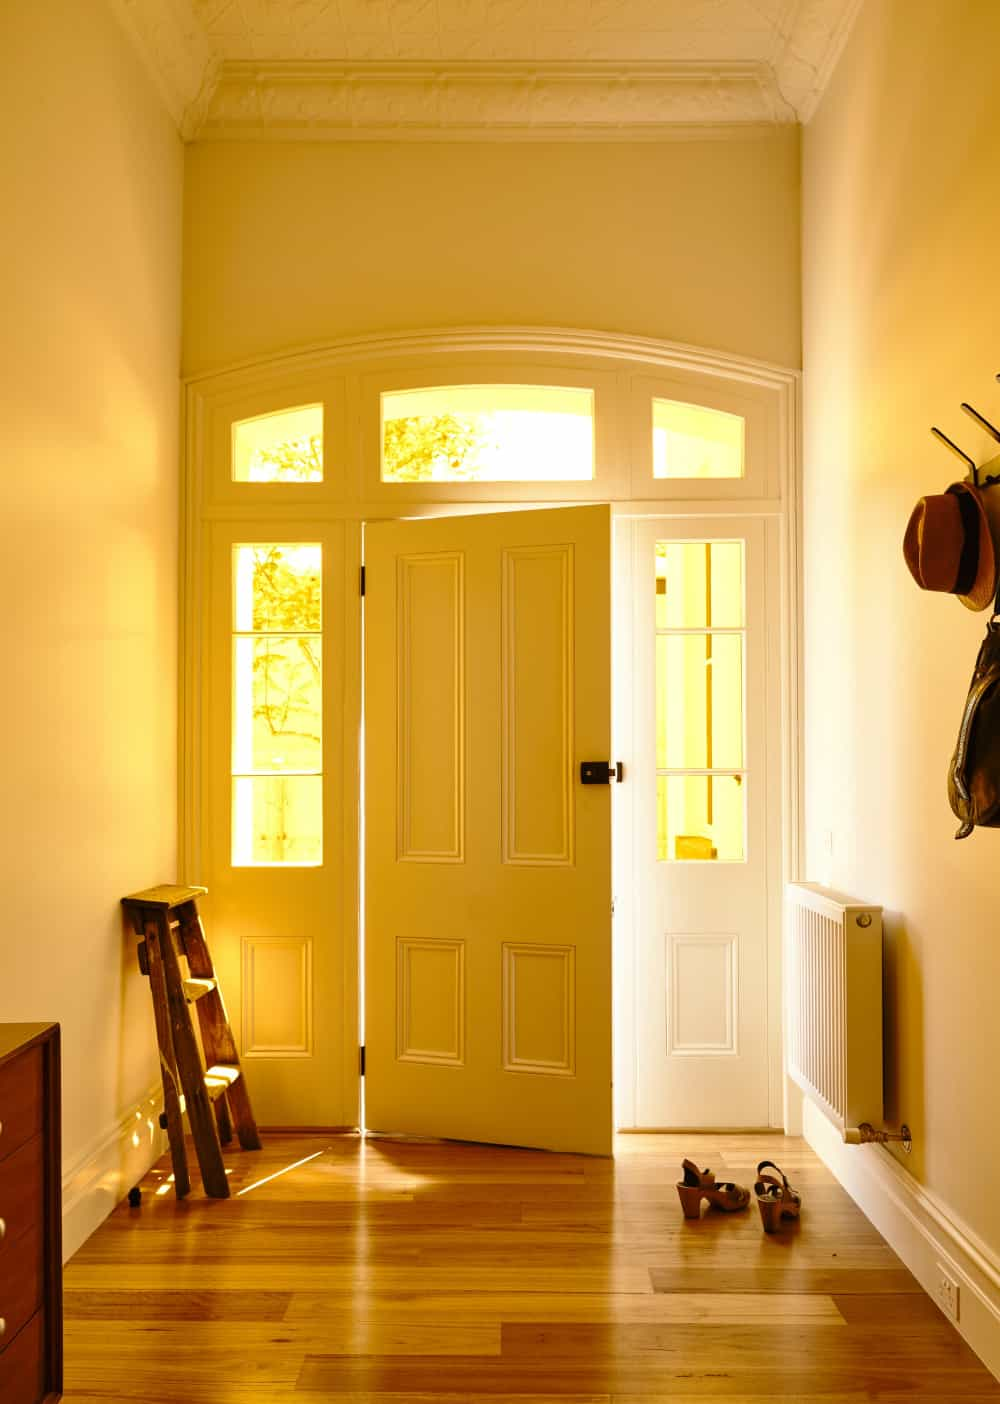 A Victorian hallway greets the residents